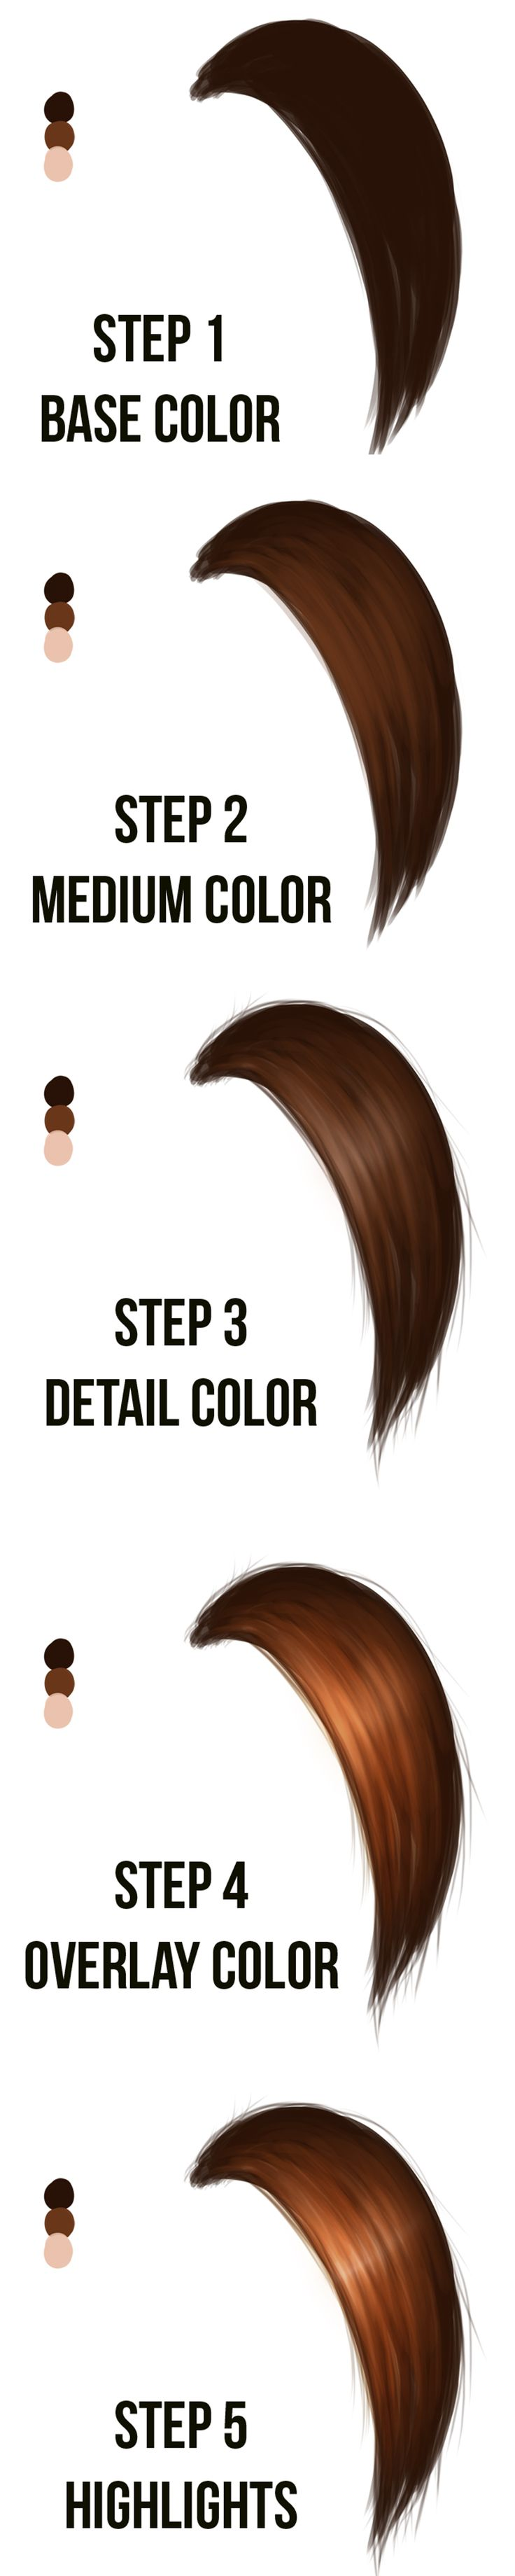 Tip: Drawing Realistic Hair | Concept Cookie Helpful to get to see the order in which colors were applied.